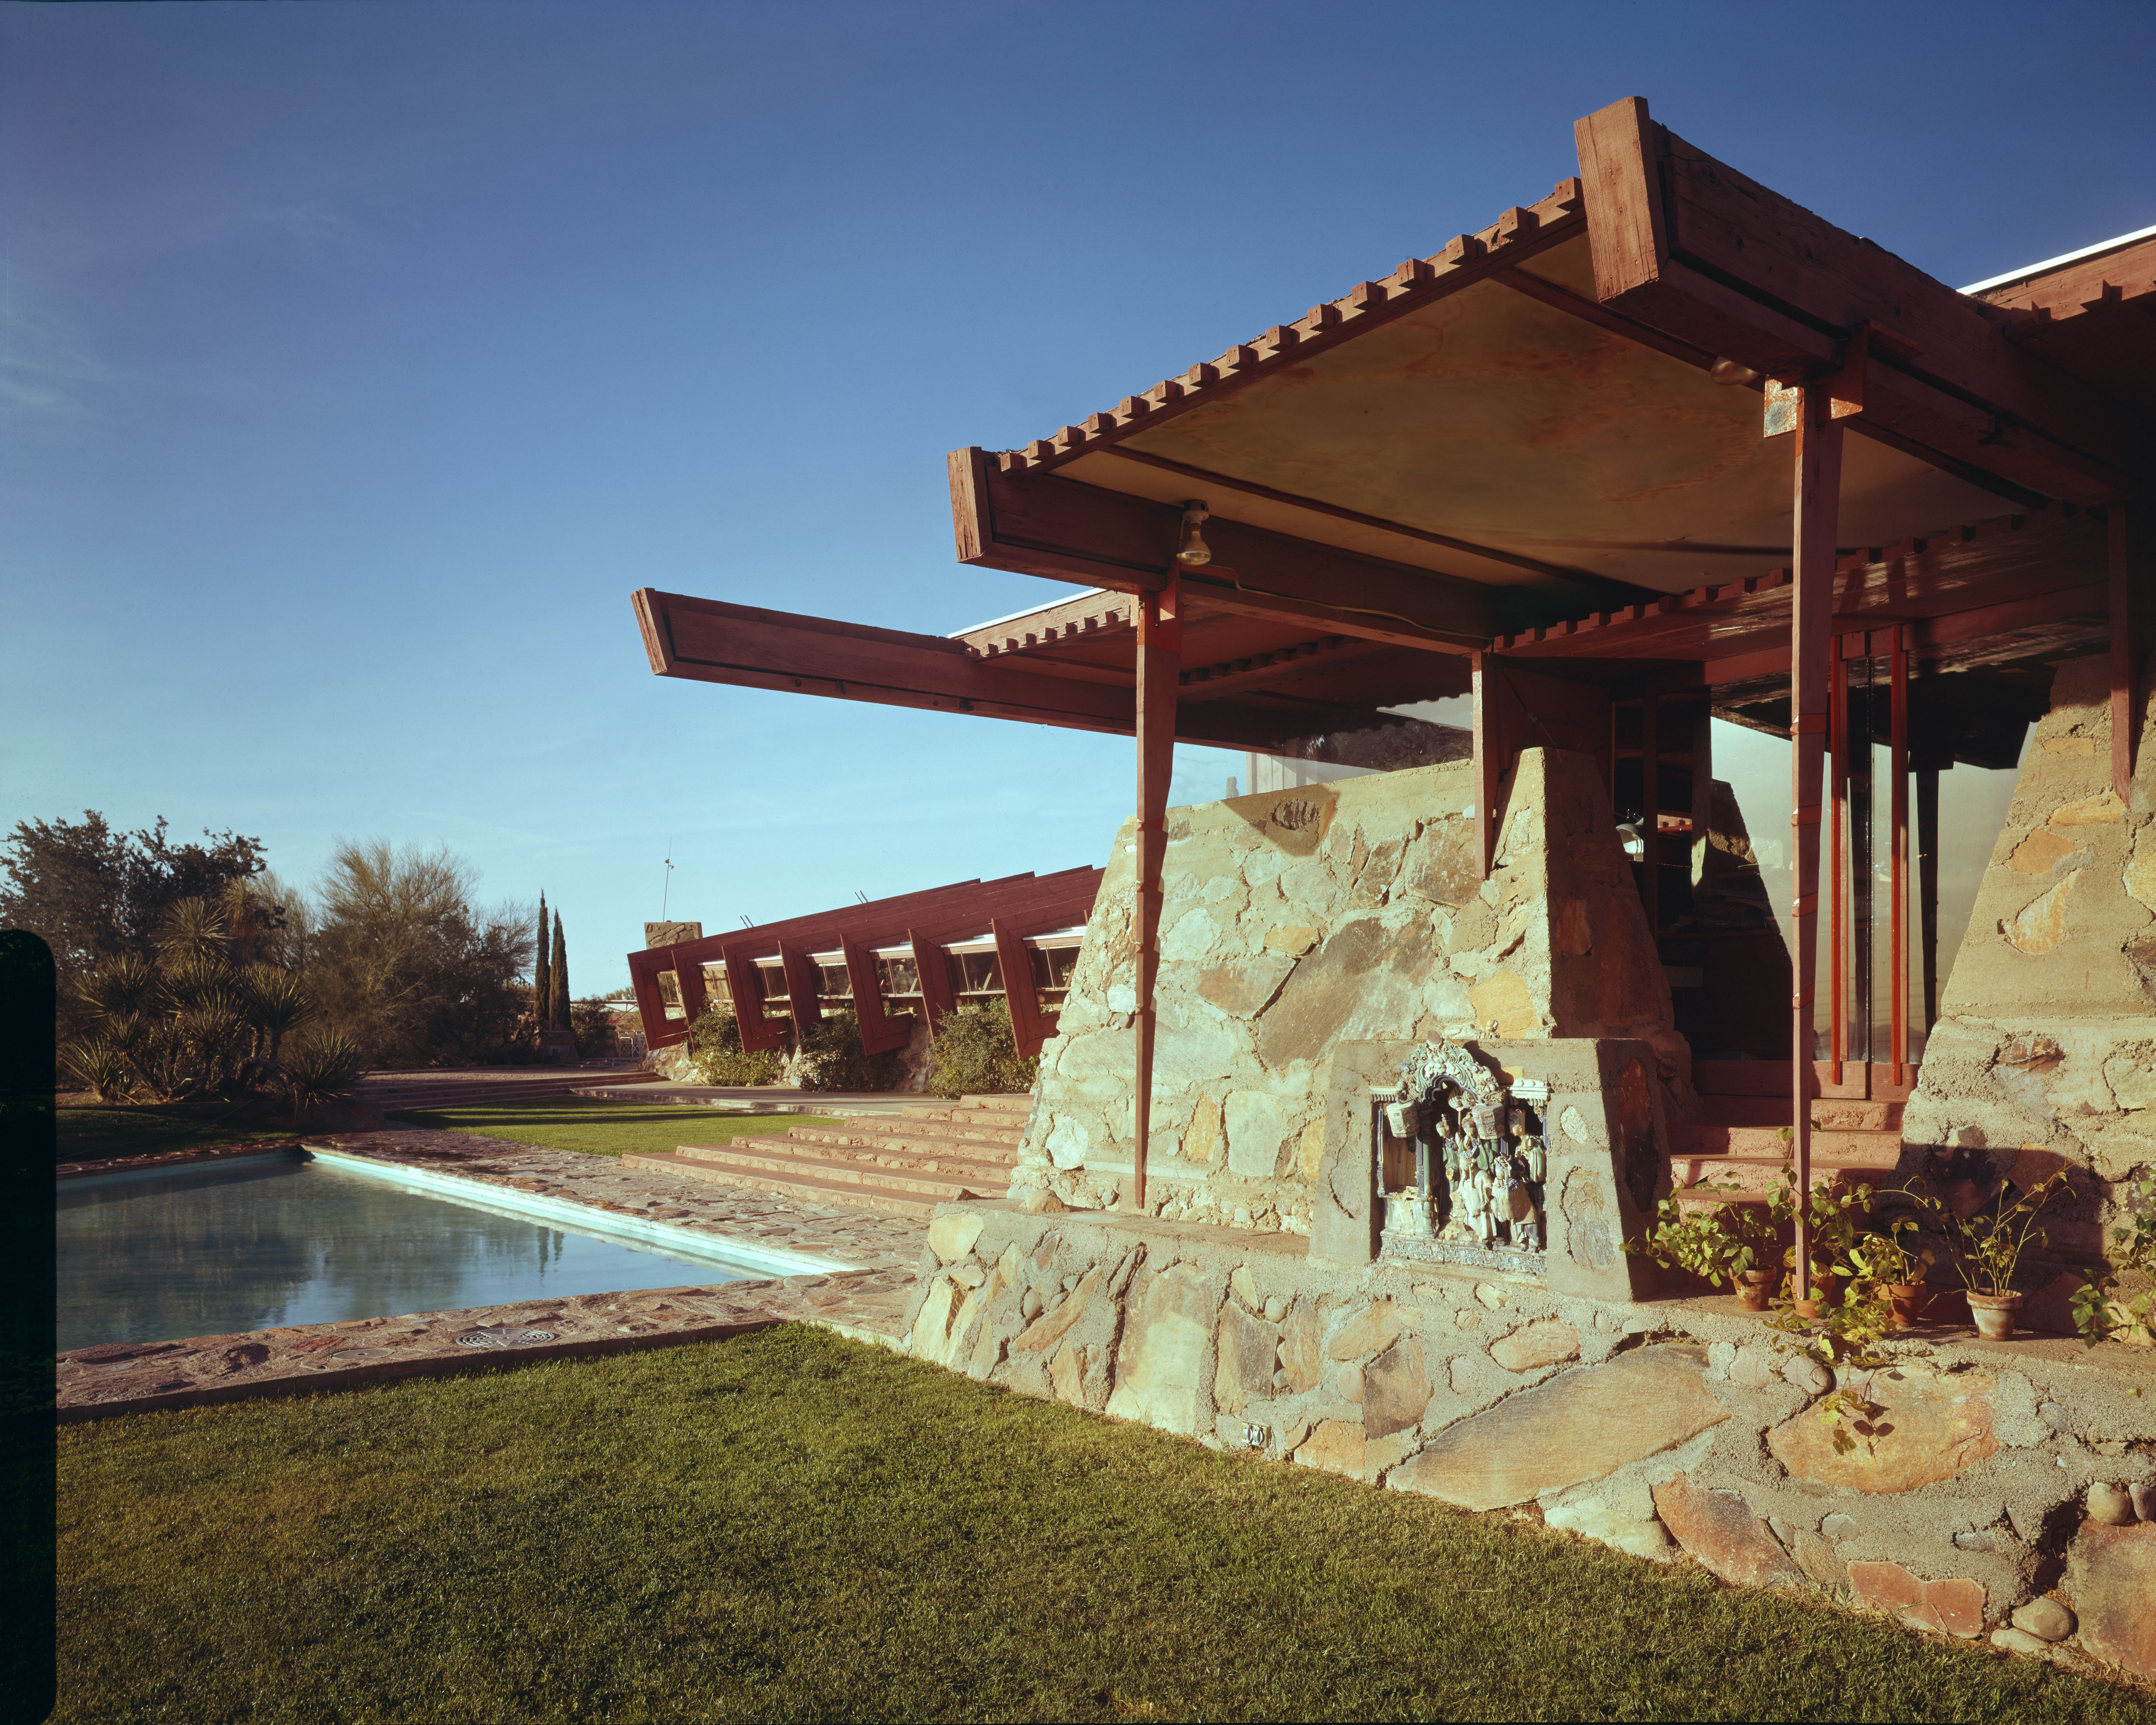 taliesin west Taliesin west was designed by frank lloyd wright in the 1930s and now is home to the frank lloyd wright school of architecture and is a national historic landmark.